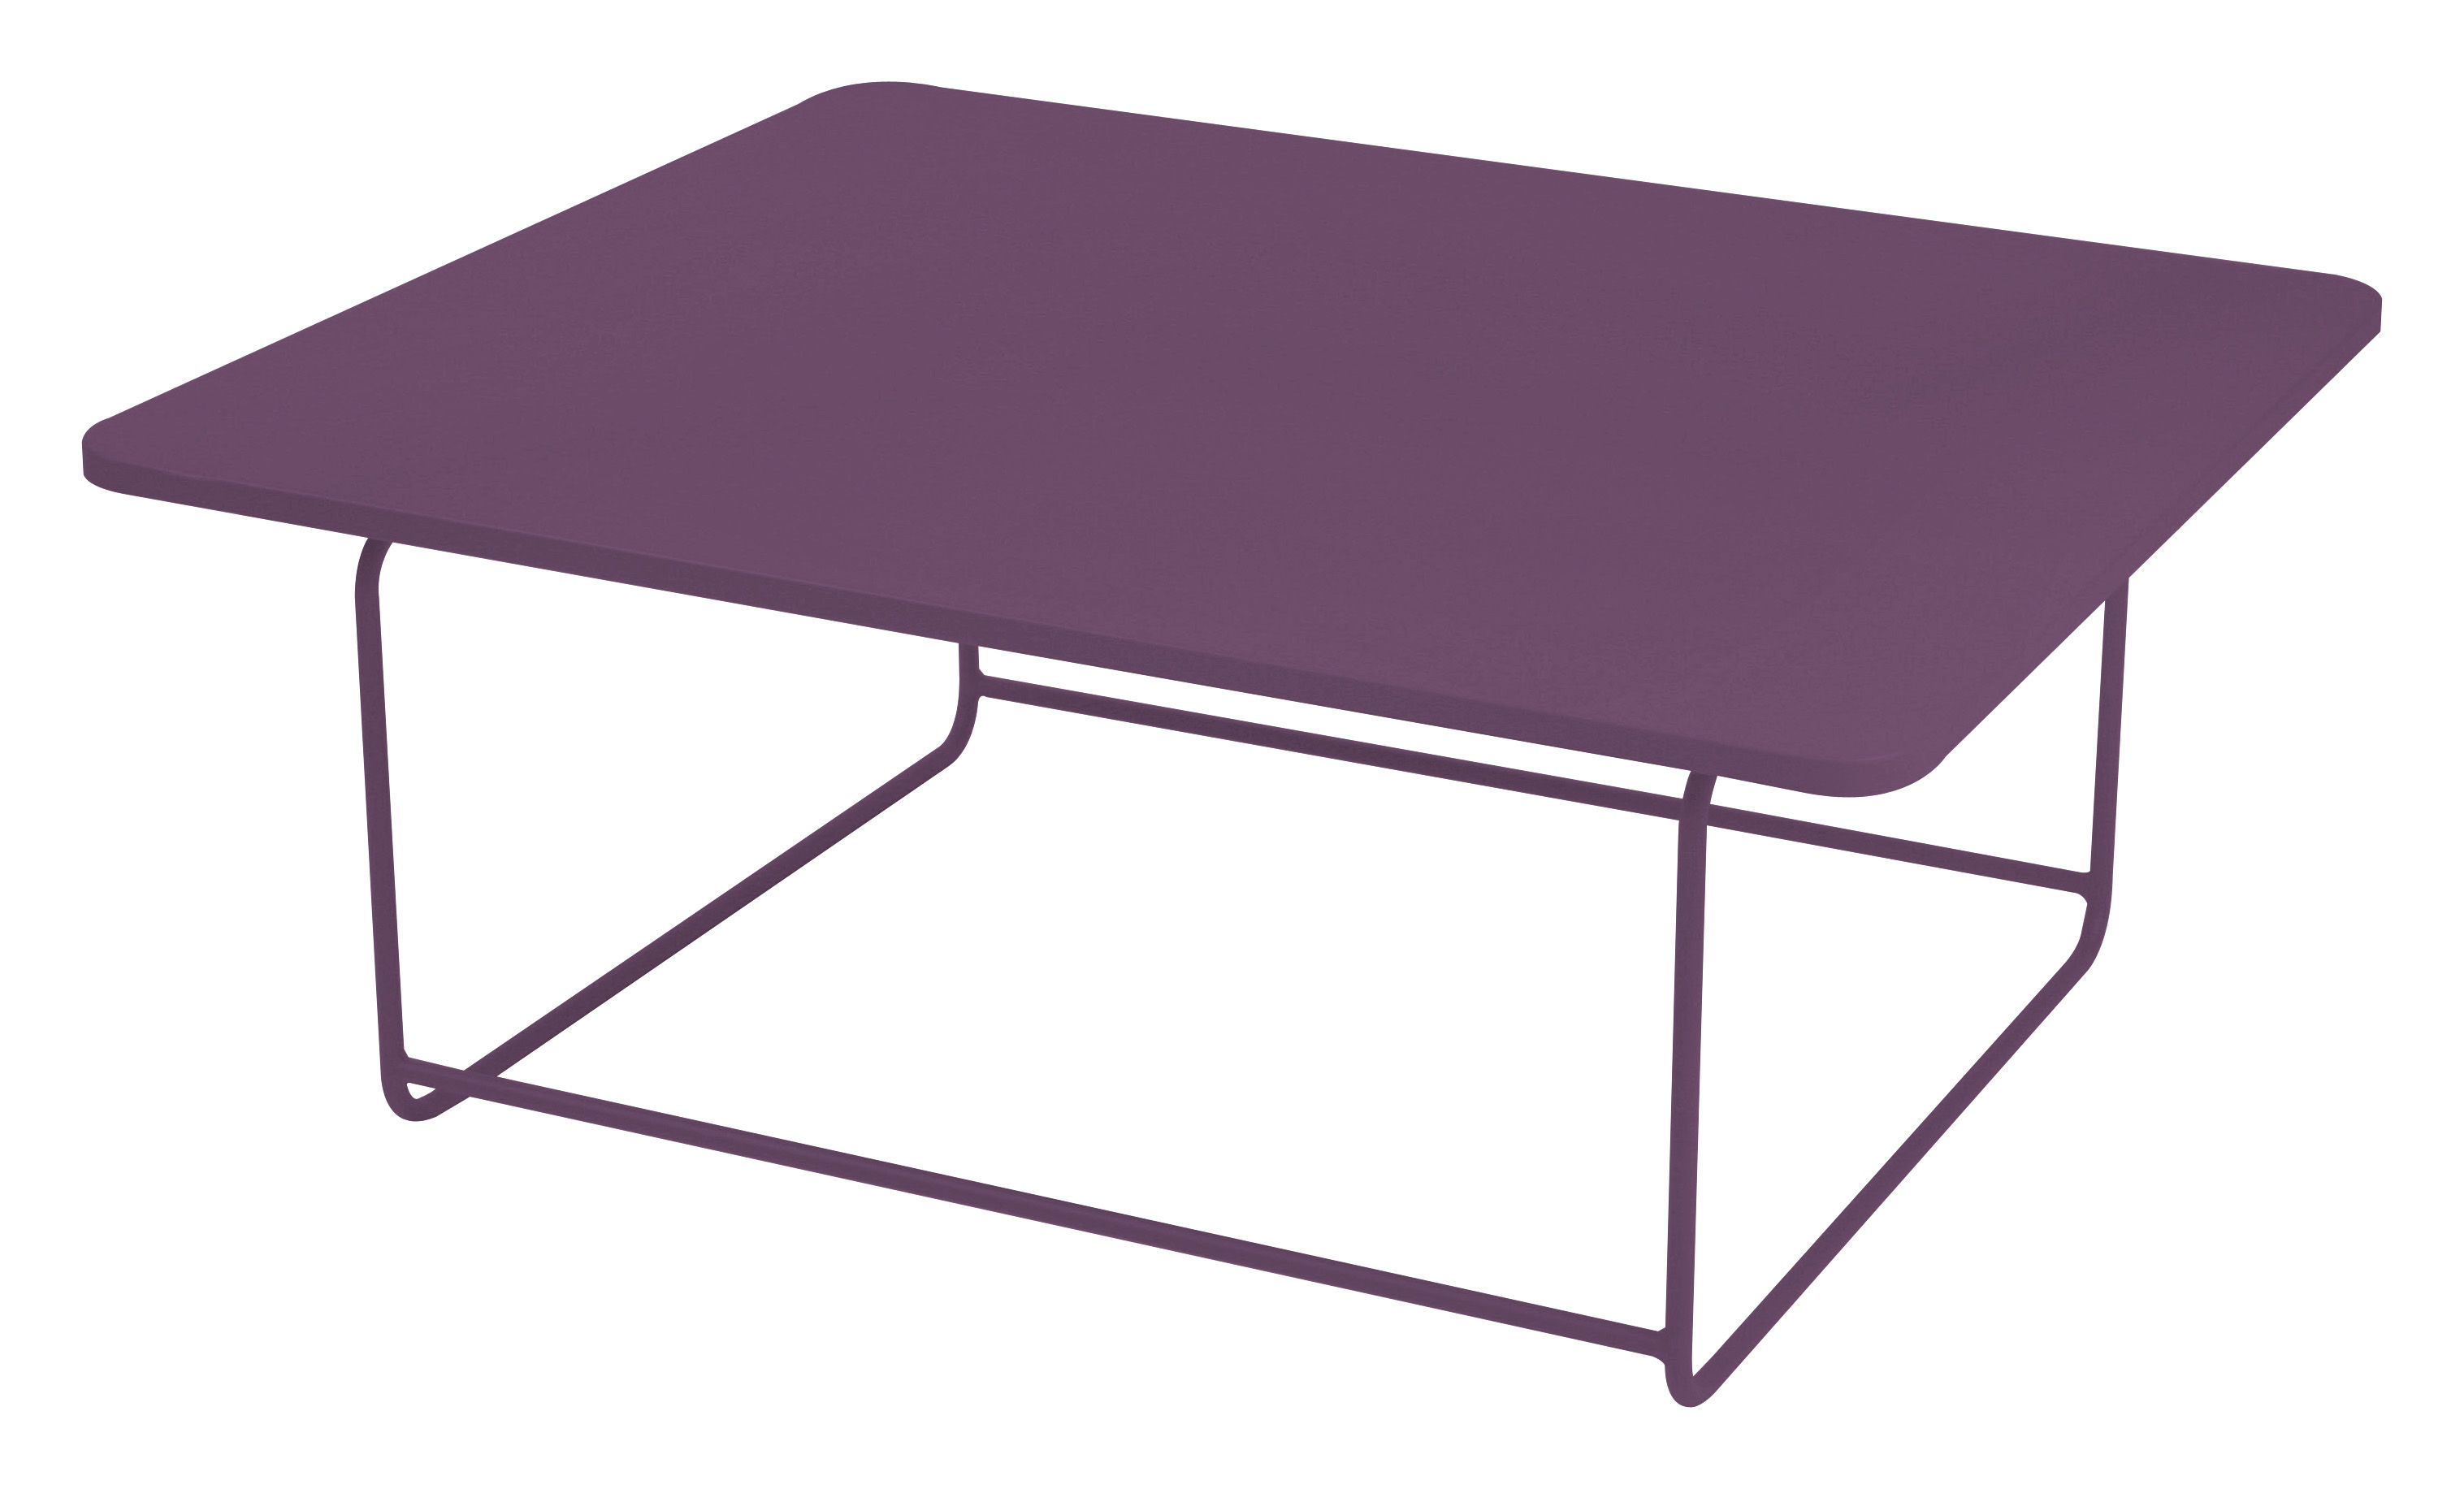 Made In Design Table Basse Table Basse Ellipse Aubergine Fermob Made In Design